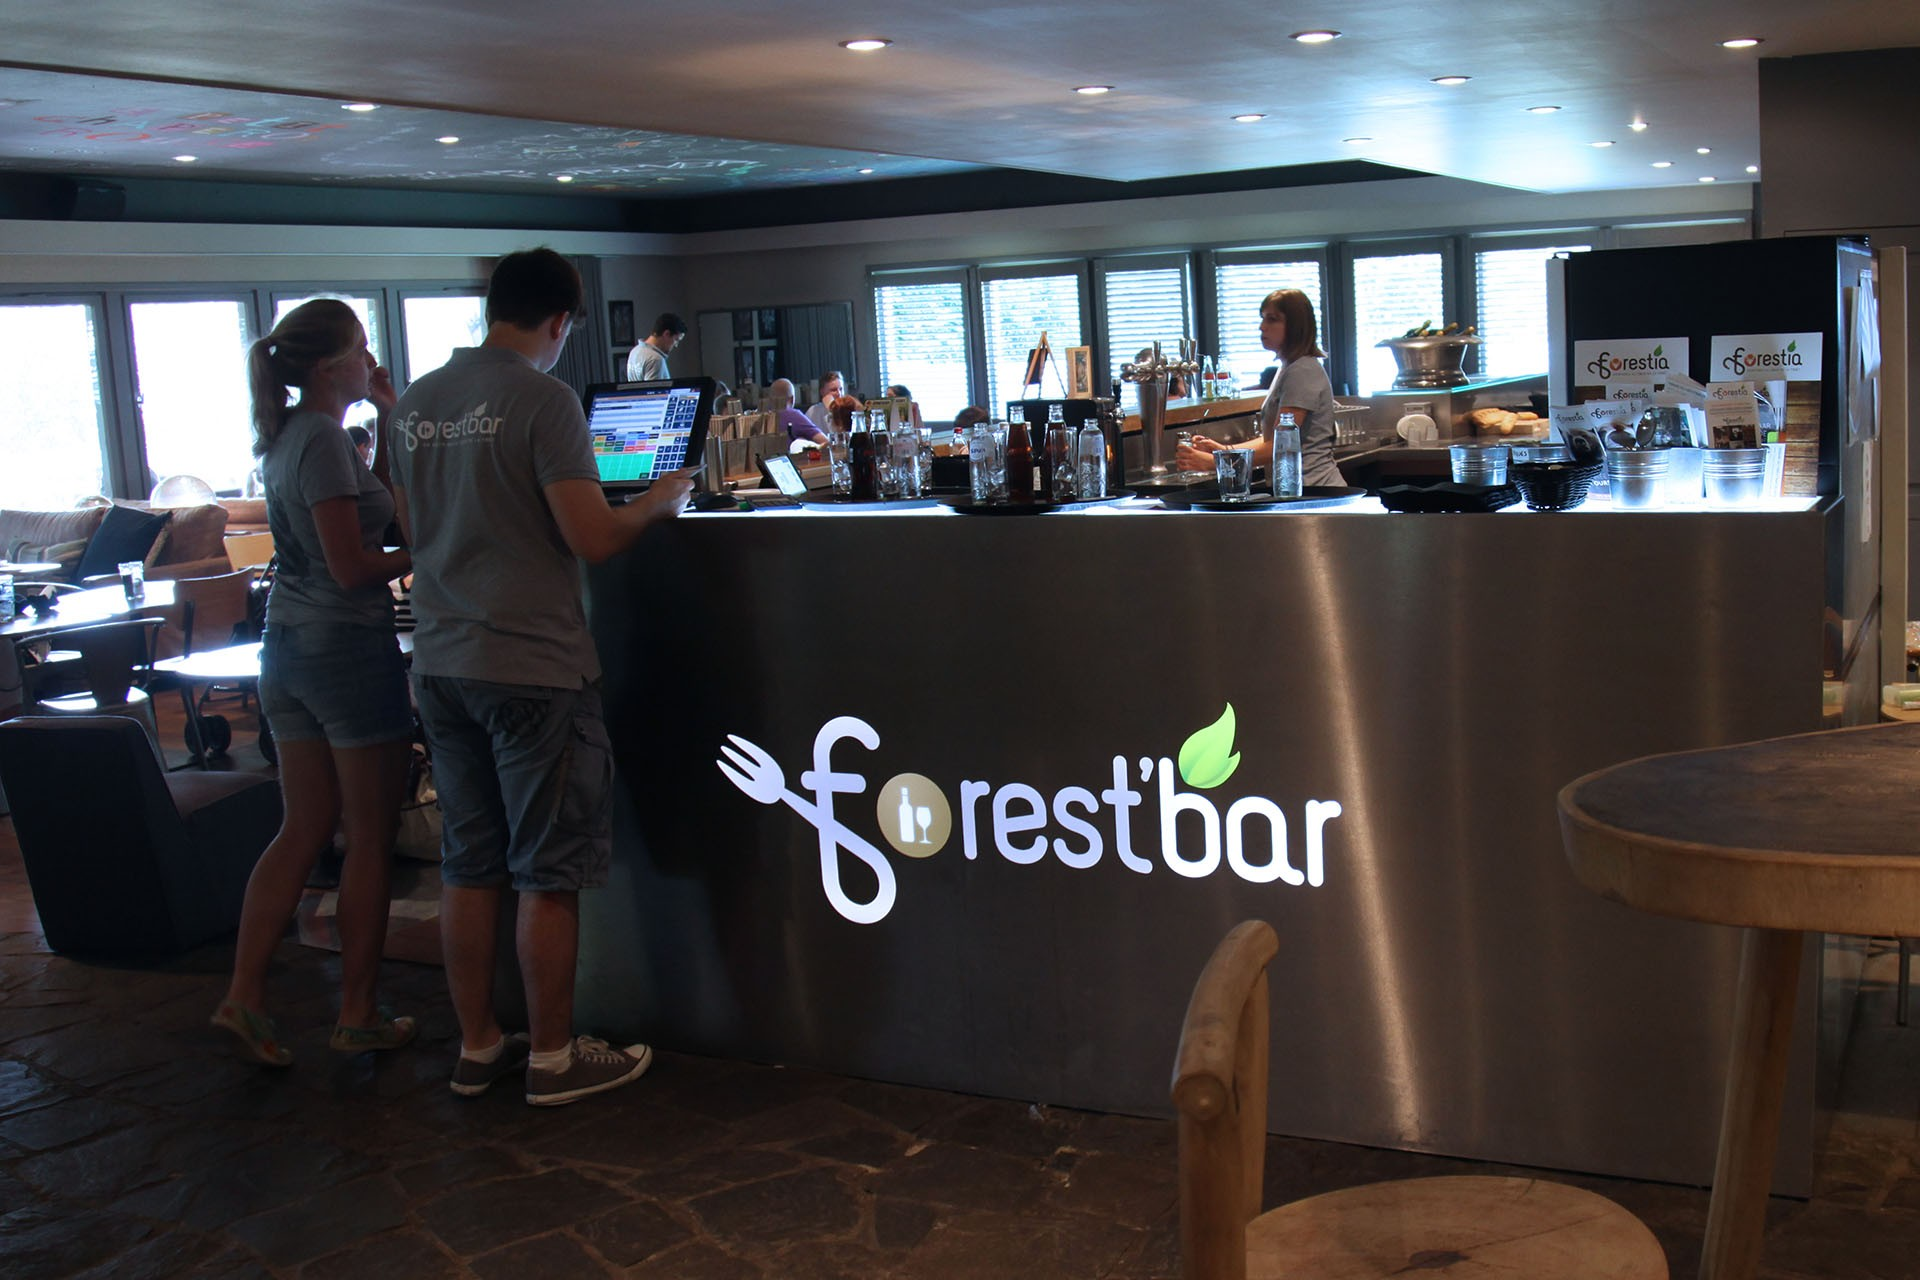 Forestia - Forest'bar